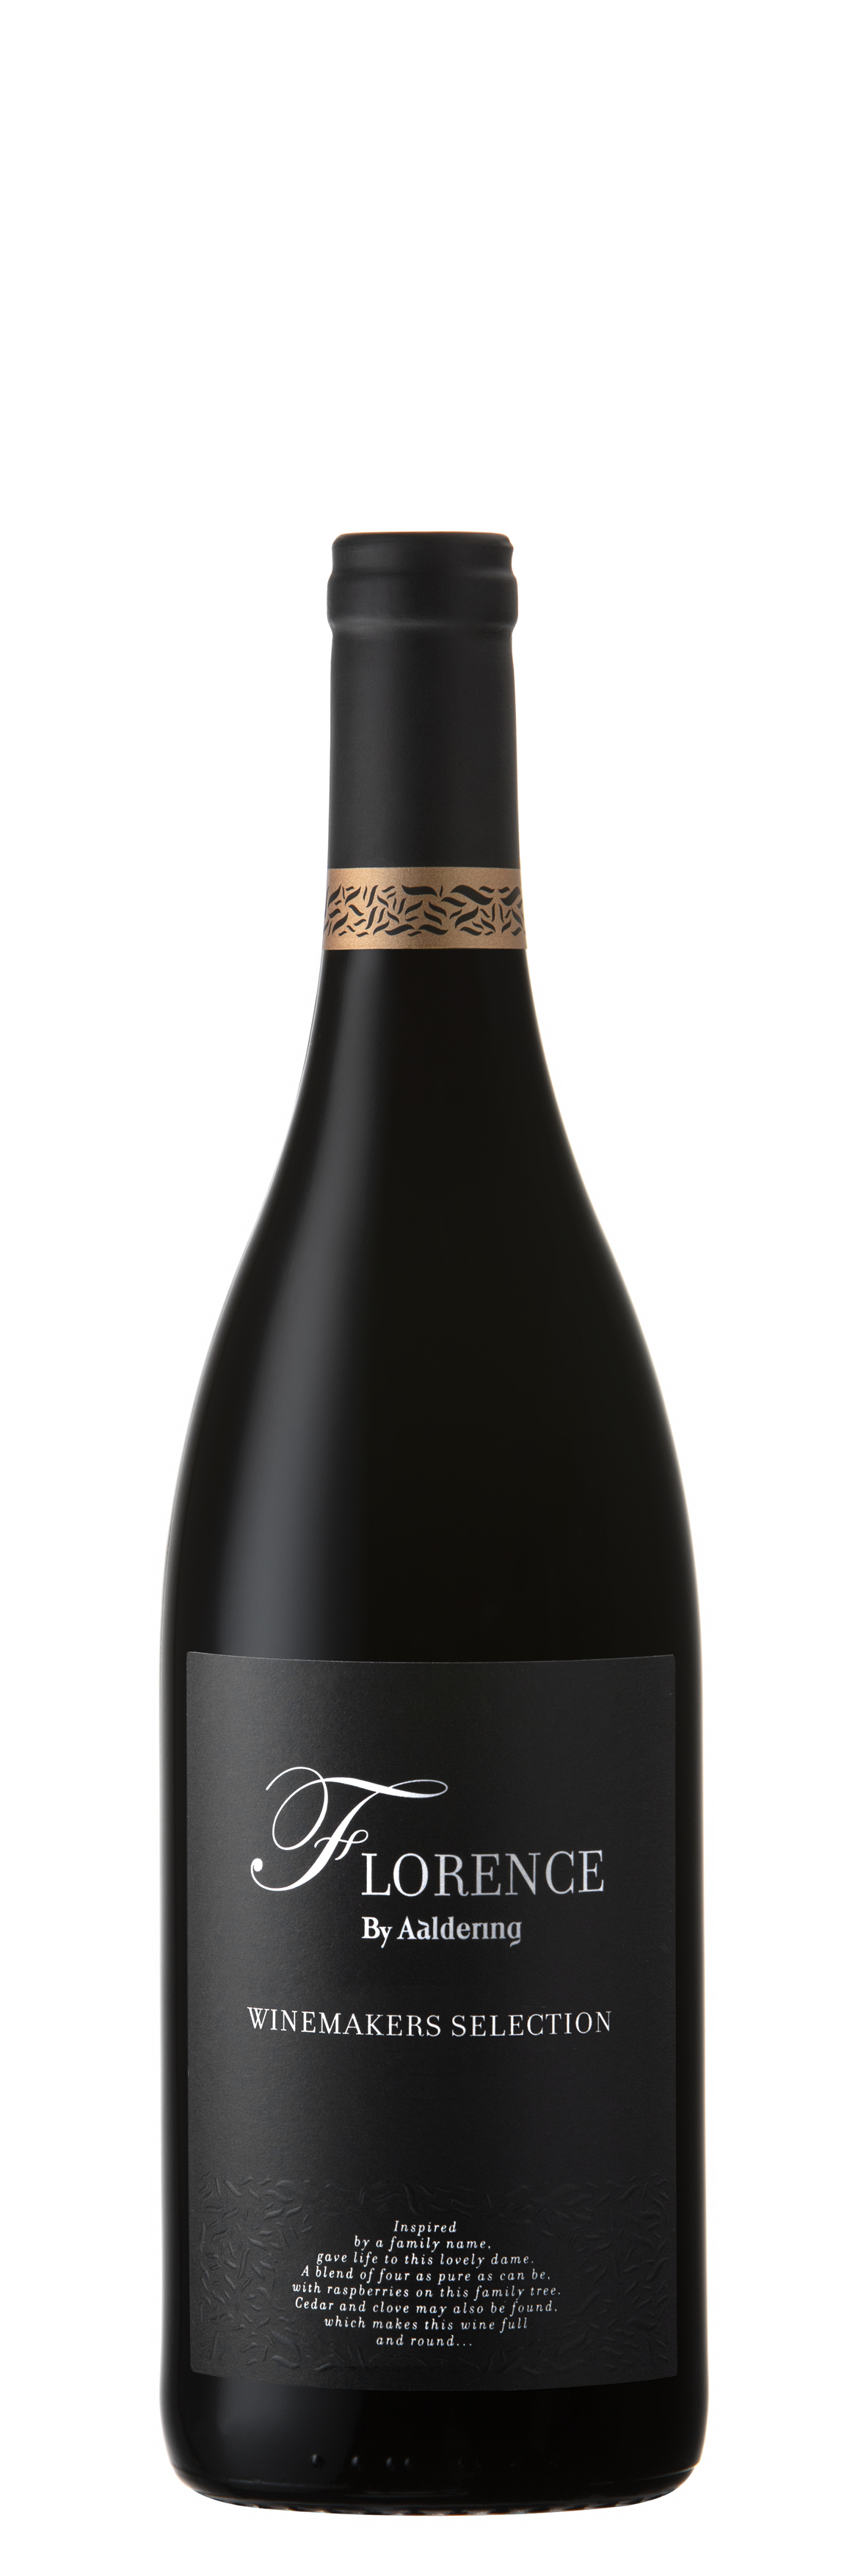 Aaldering Florence Winemakers Selection 2018